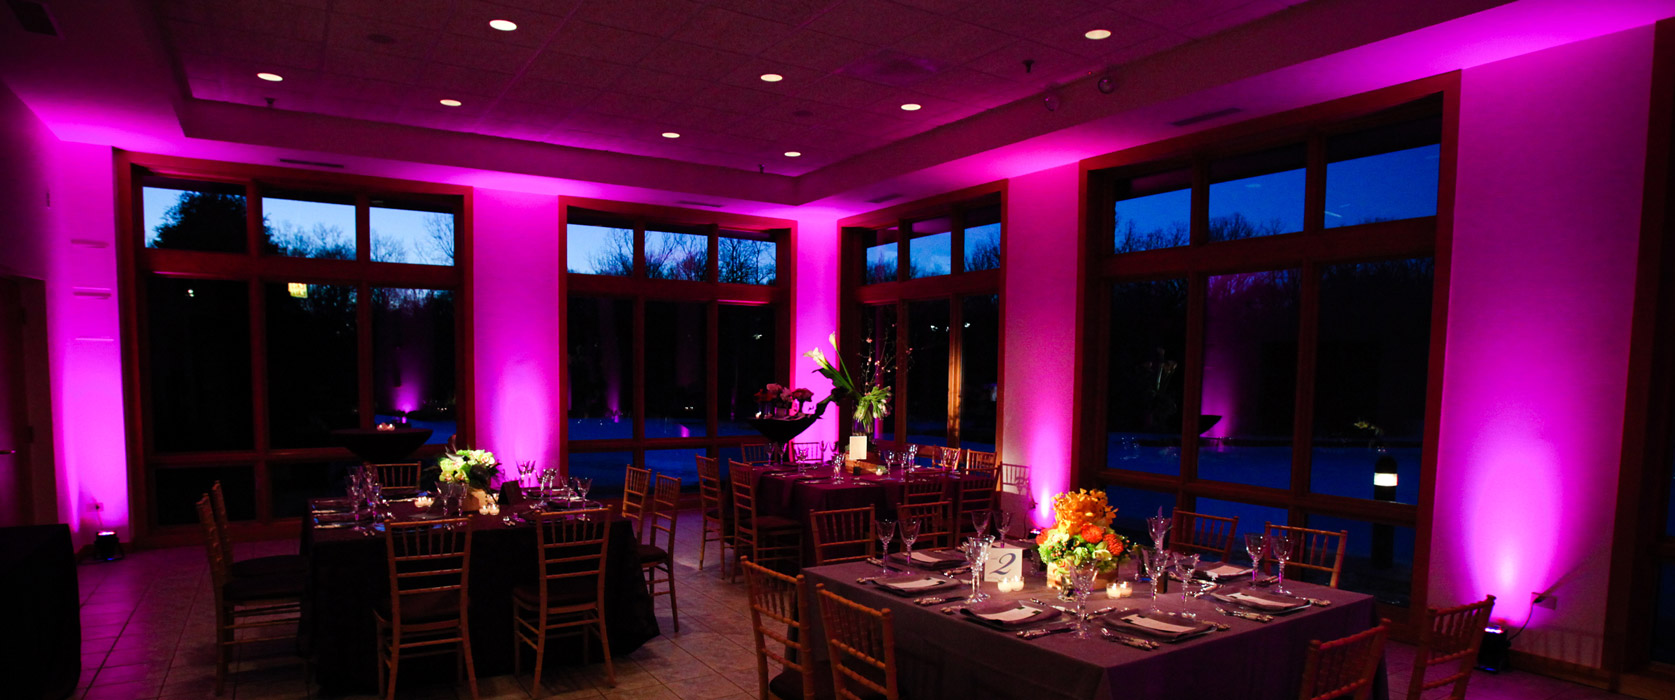 Celebrate With Music Event Lighting Options